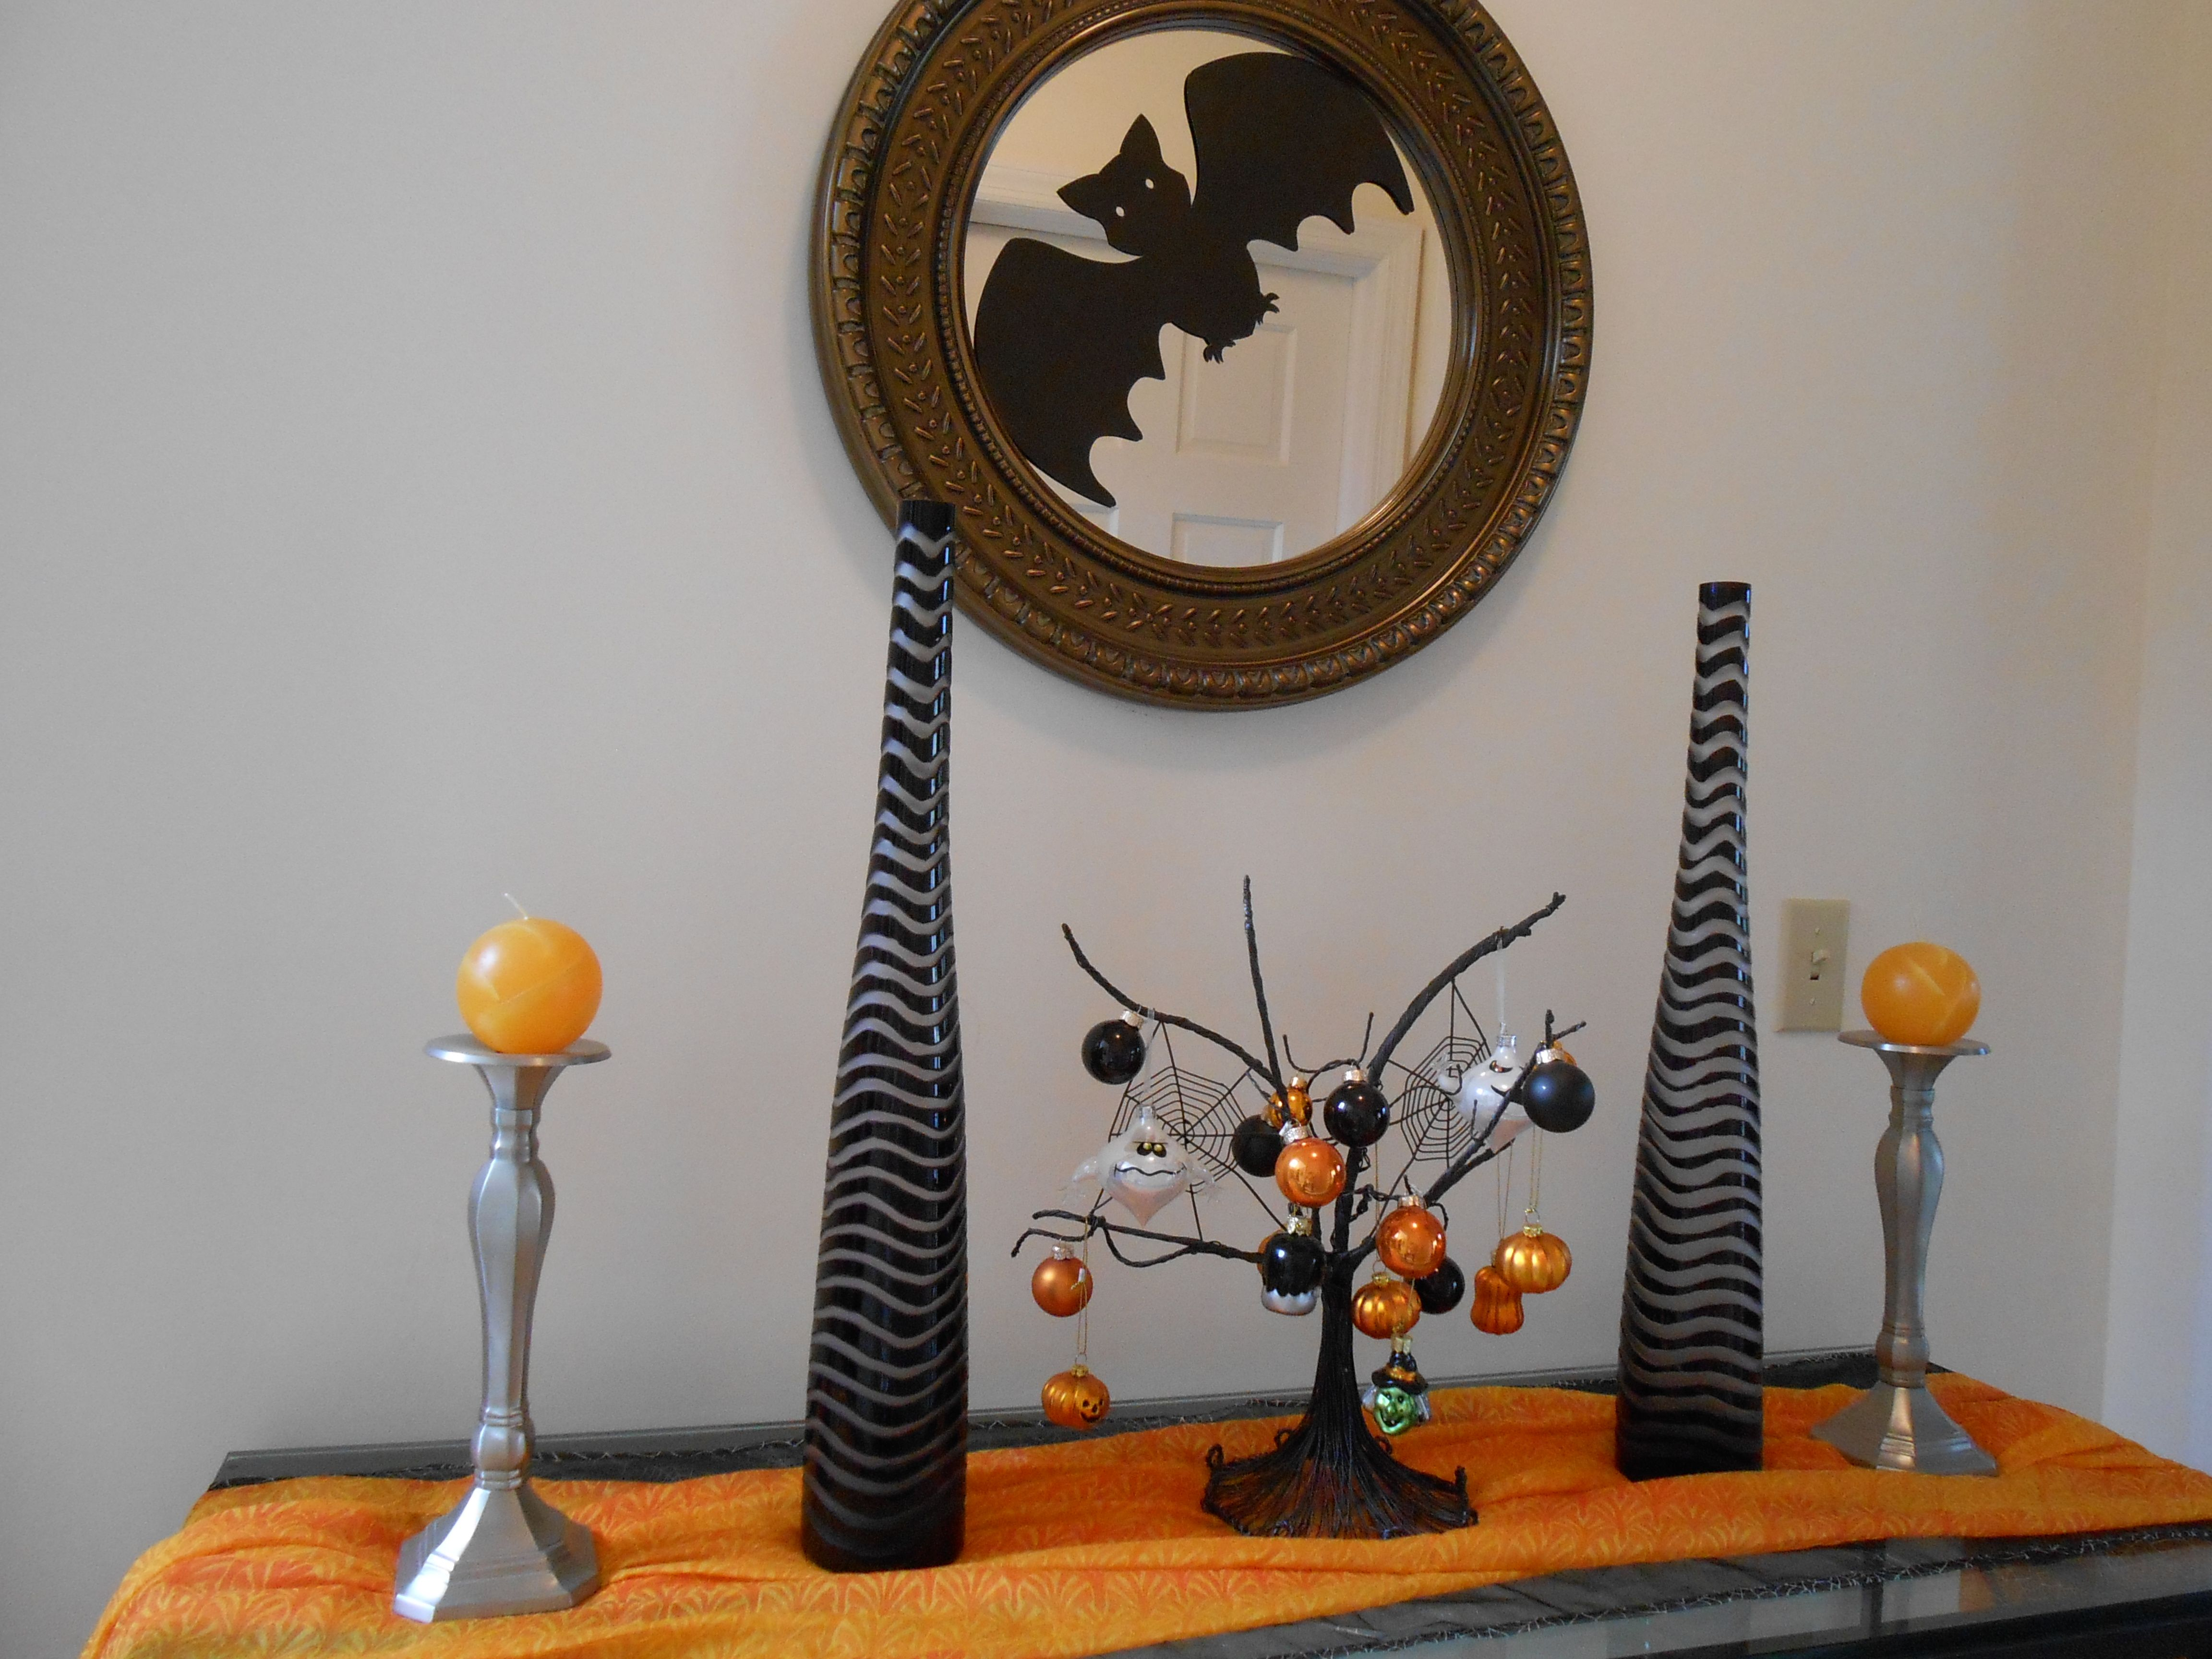 Halloween table and wall decorations with mini Halloween